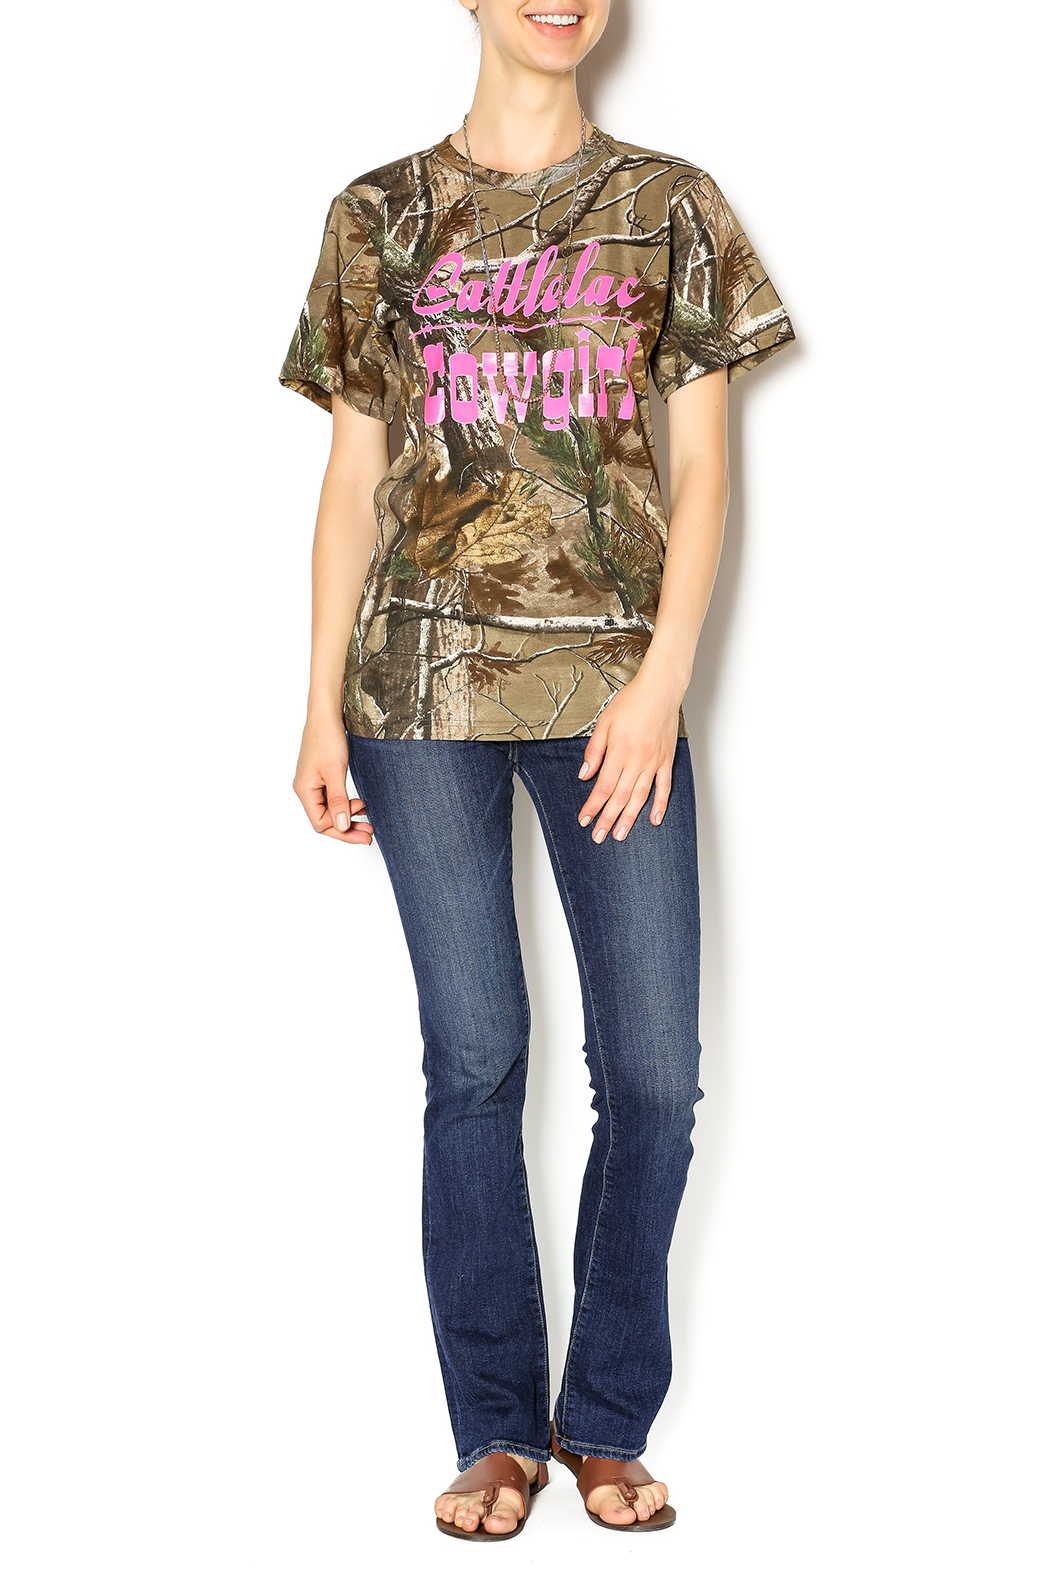 Cattlelac Cowgirl & Co. Camo Cattlelac Tee - Front Full Image